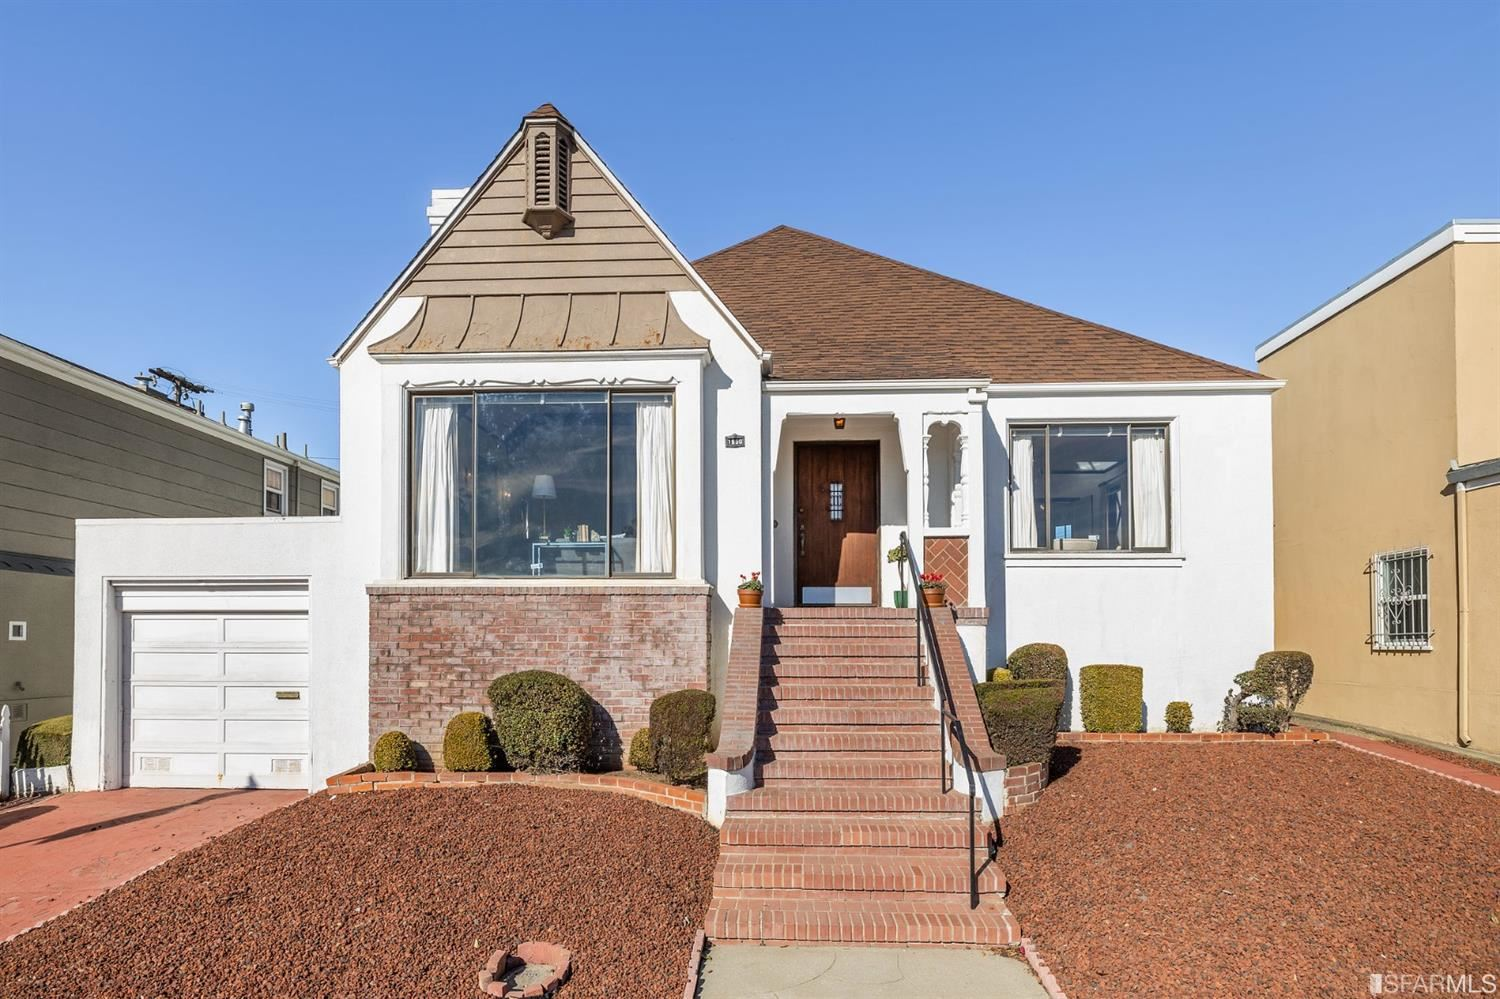 1650 Sloat Boulevard, San Francisco, CA 94132 - #: 509538